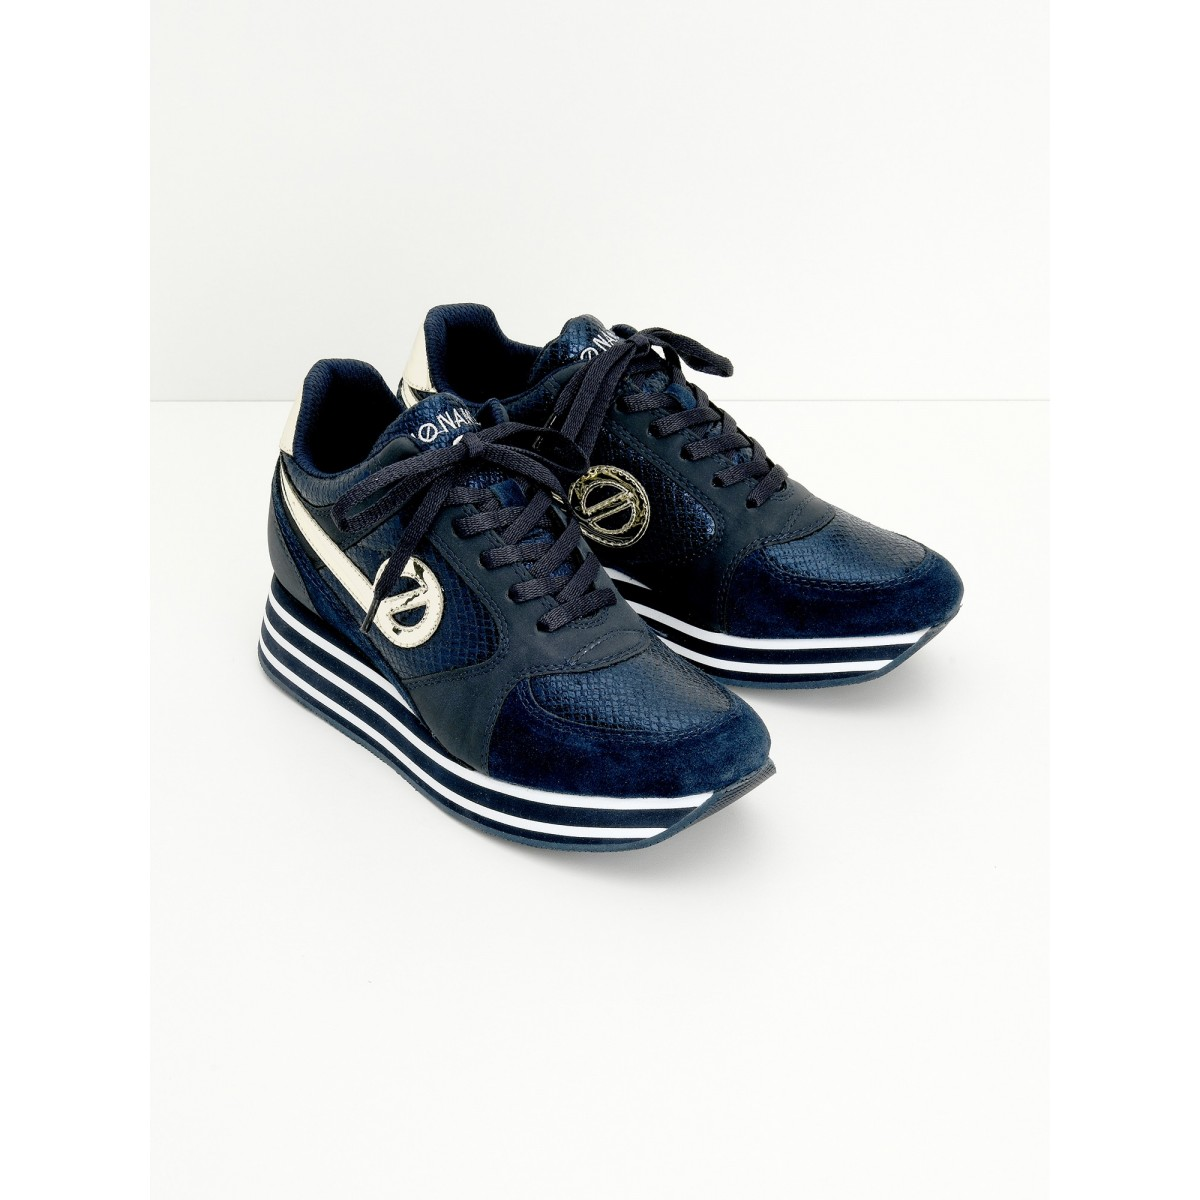 No Name PARKO JOGGER - LADY/SUEDE - NAVY/NAVY